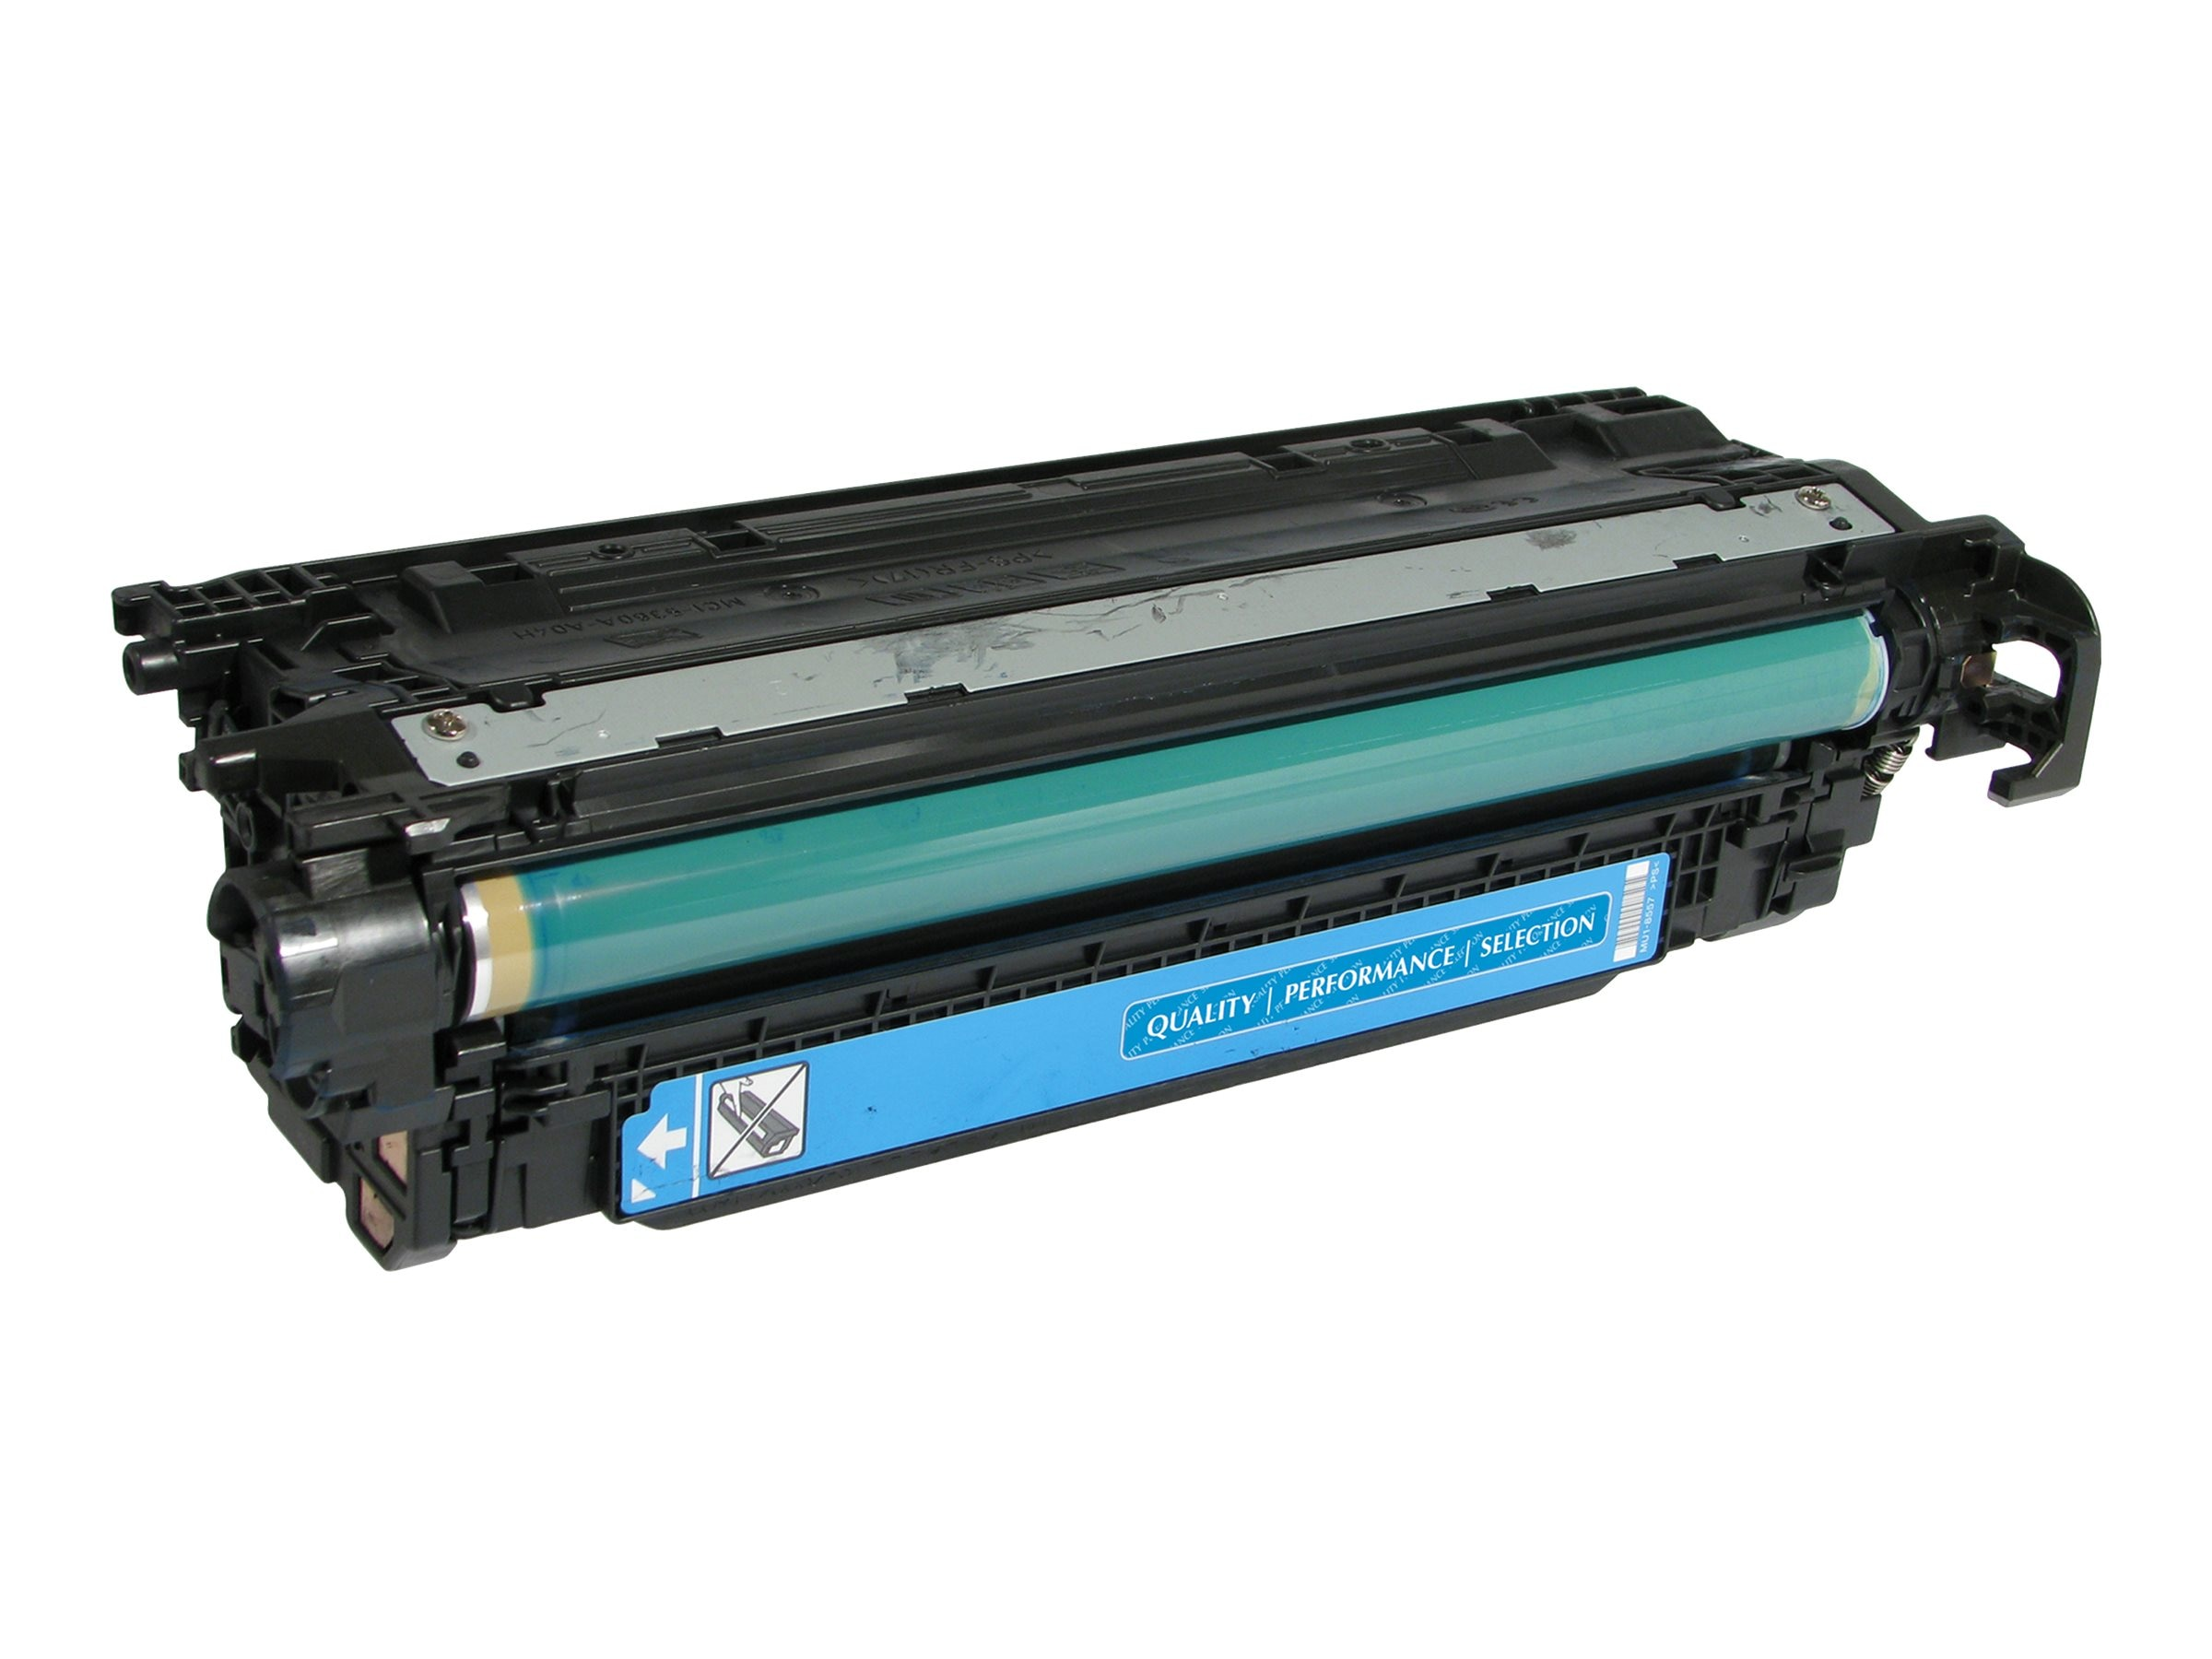 V7 CE401AG Cyan Toner Cartridge for HP LaserJet Enterprise Color M551 M575